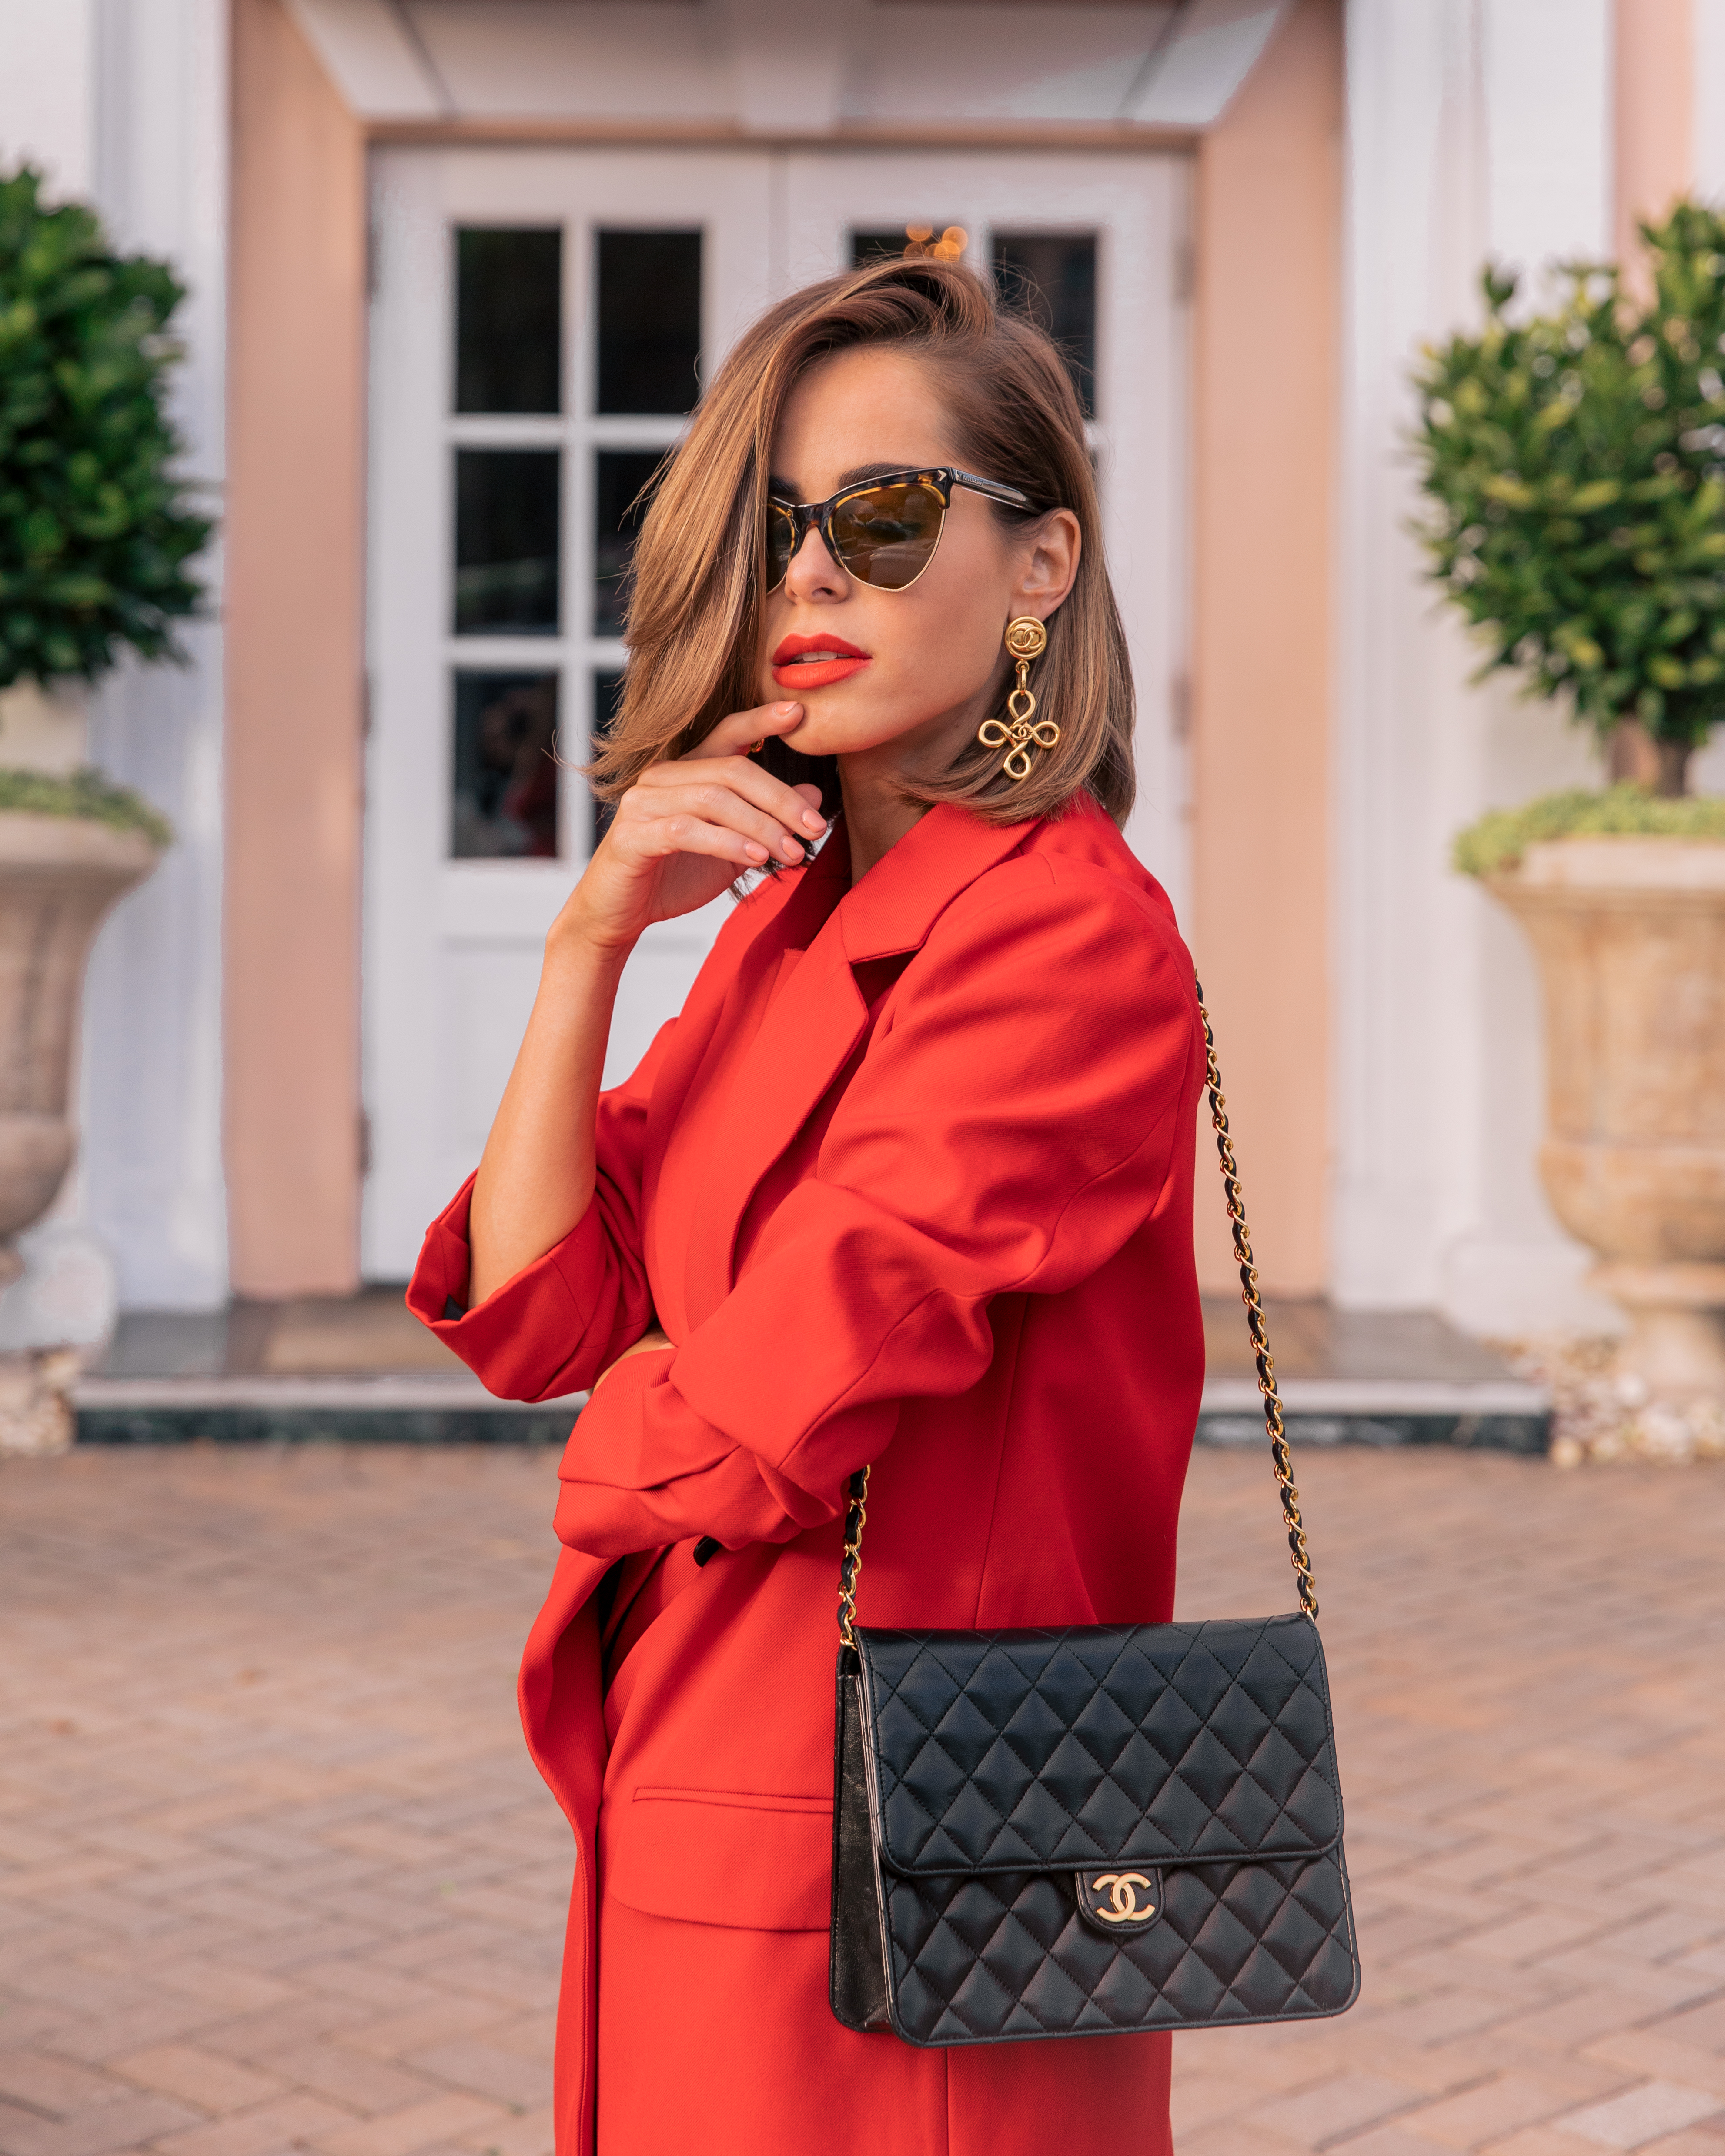 Style Blogger Stephanie Hill from The Style Bungalow wears an ootd featuring red and Chanel